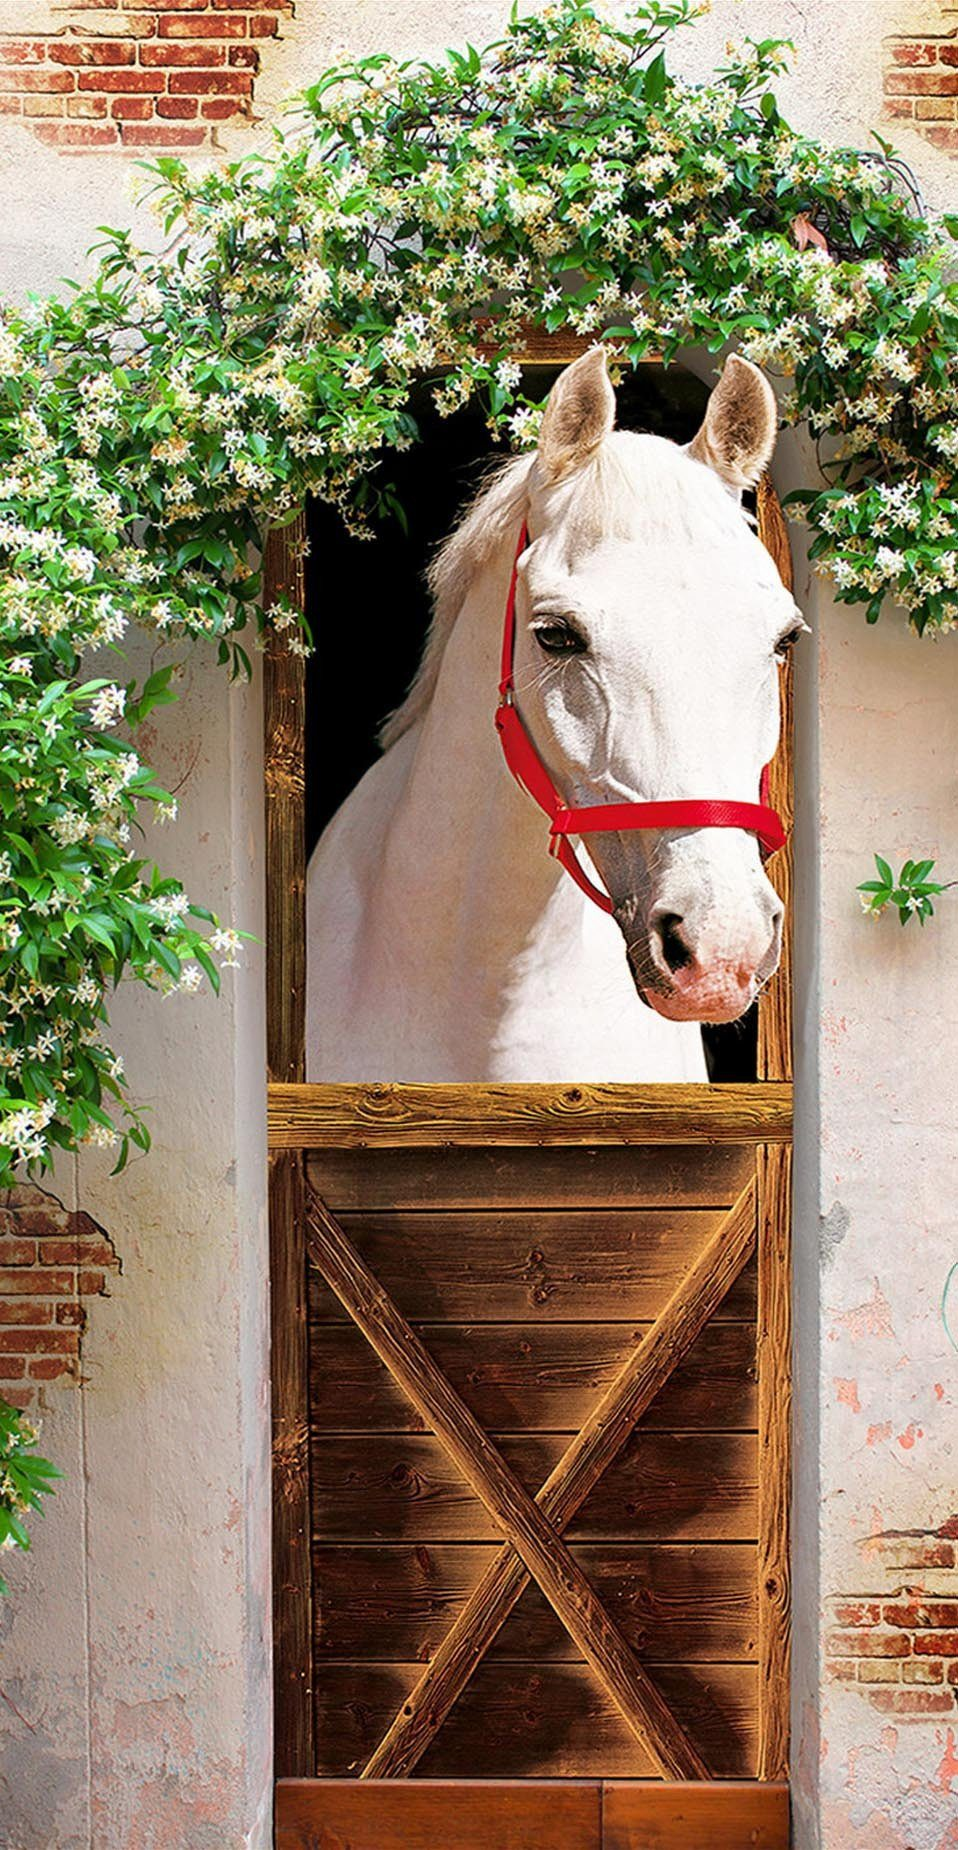 3D flowers covered stables door mural Wallpaper AJ Wallpaper